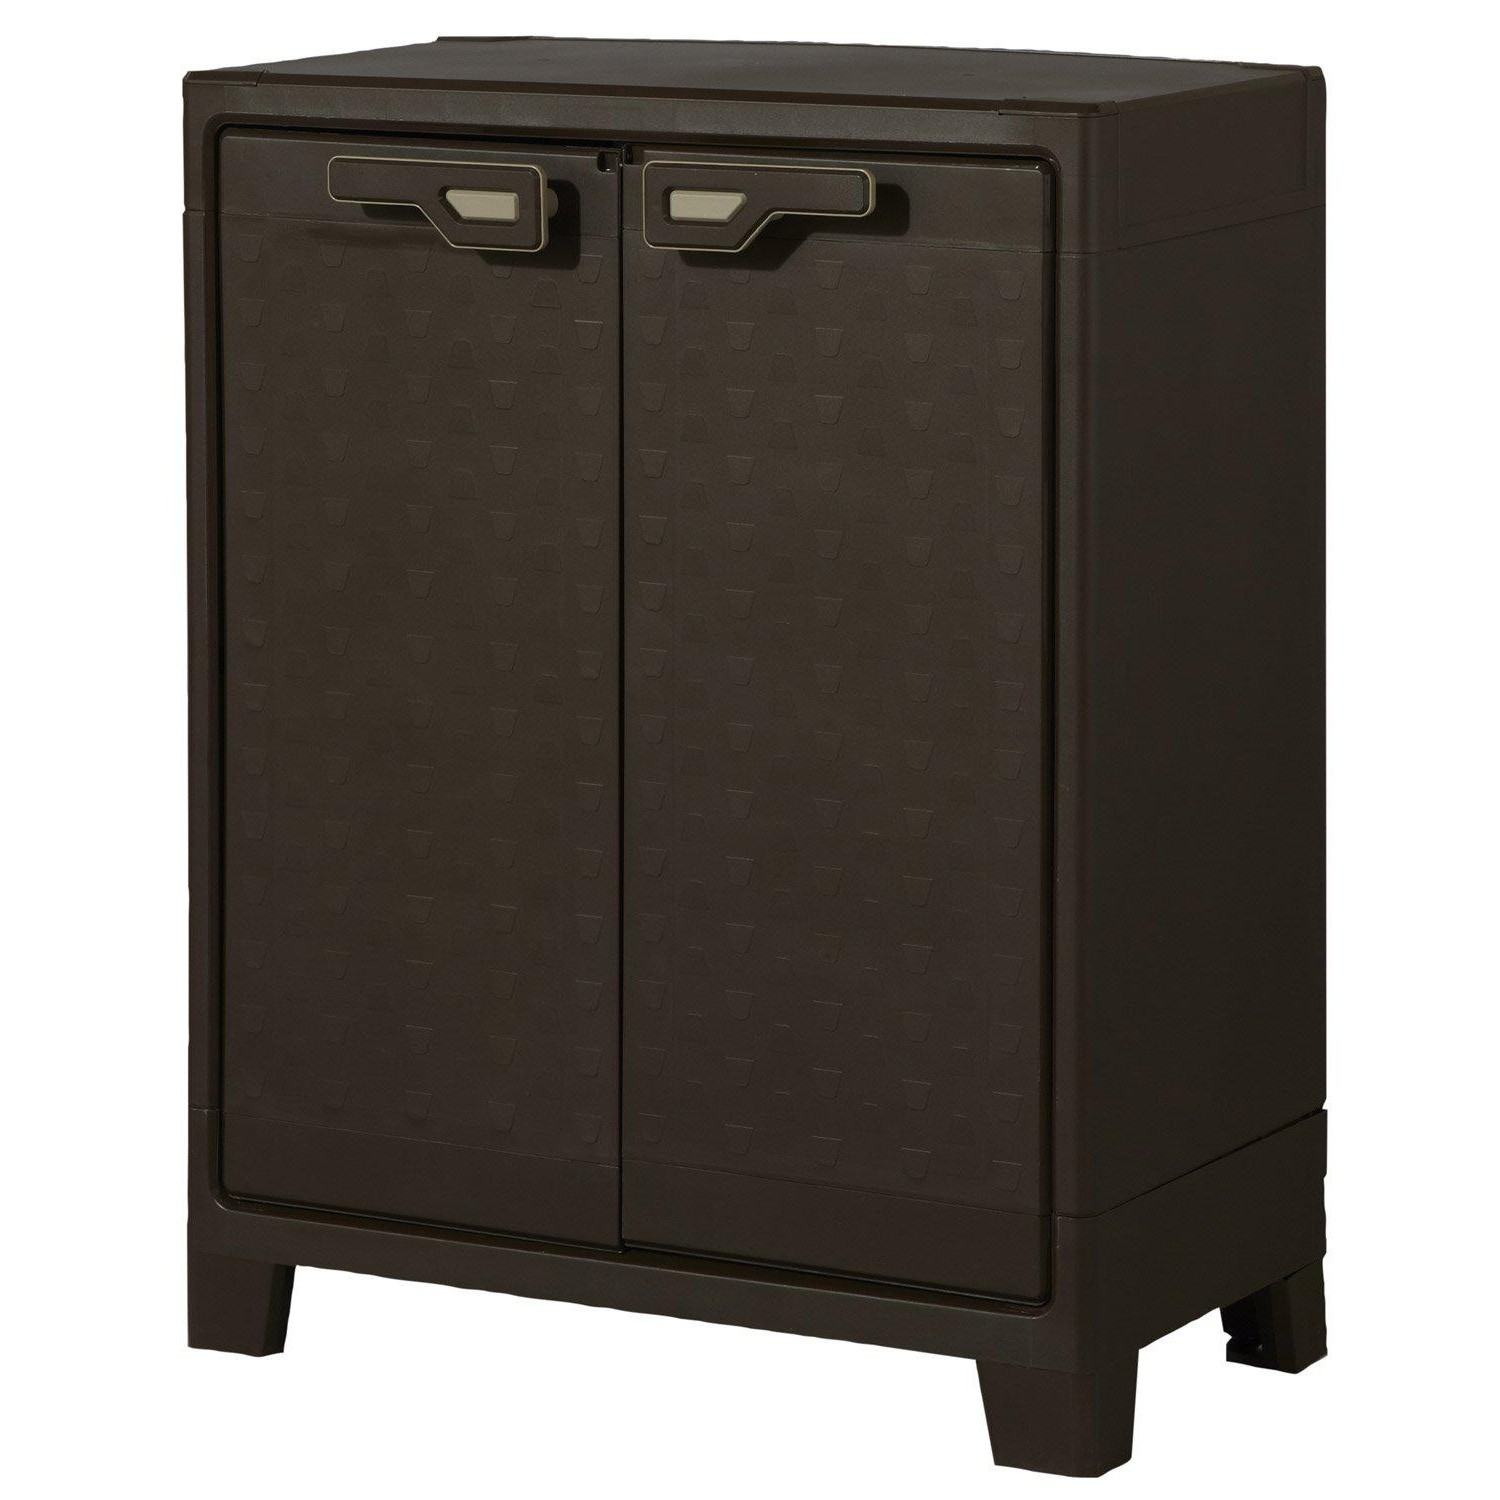 armoire pvc leroy merlin trendy abri de jardin soldes. Black Bedroom Furniture Sets. Home Design Ideas